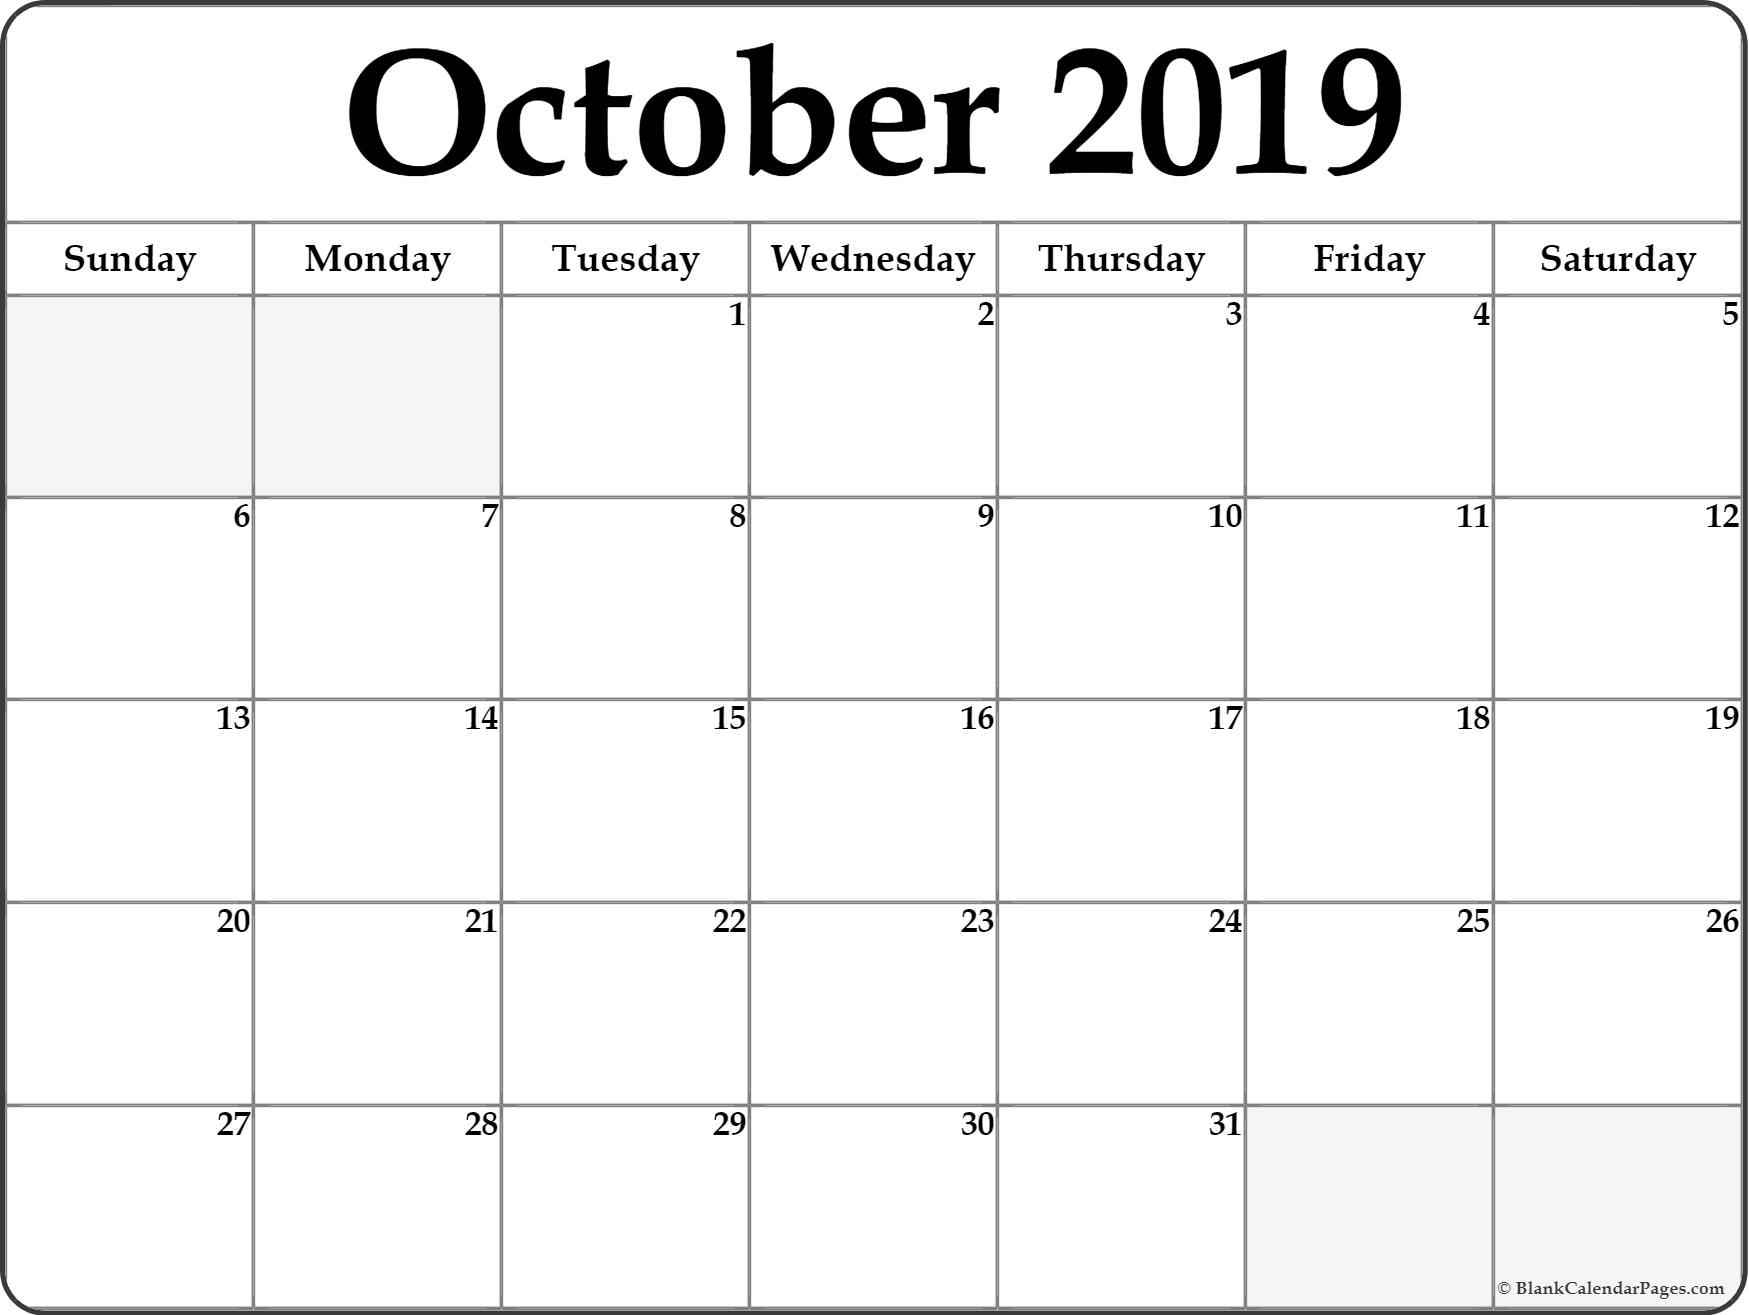 photo about Oct Calendar Printable Pdf called Blank Oct Calendar 2019 Printable PDF